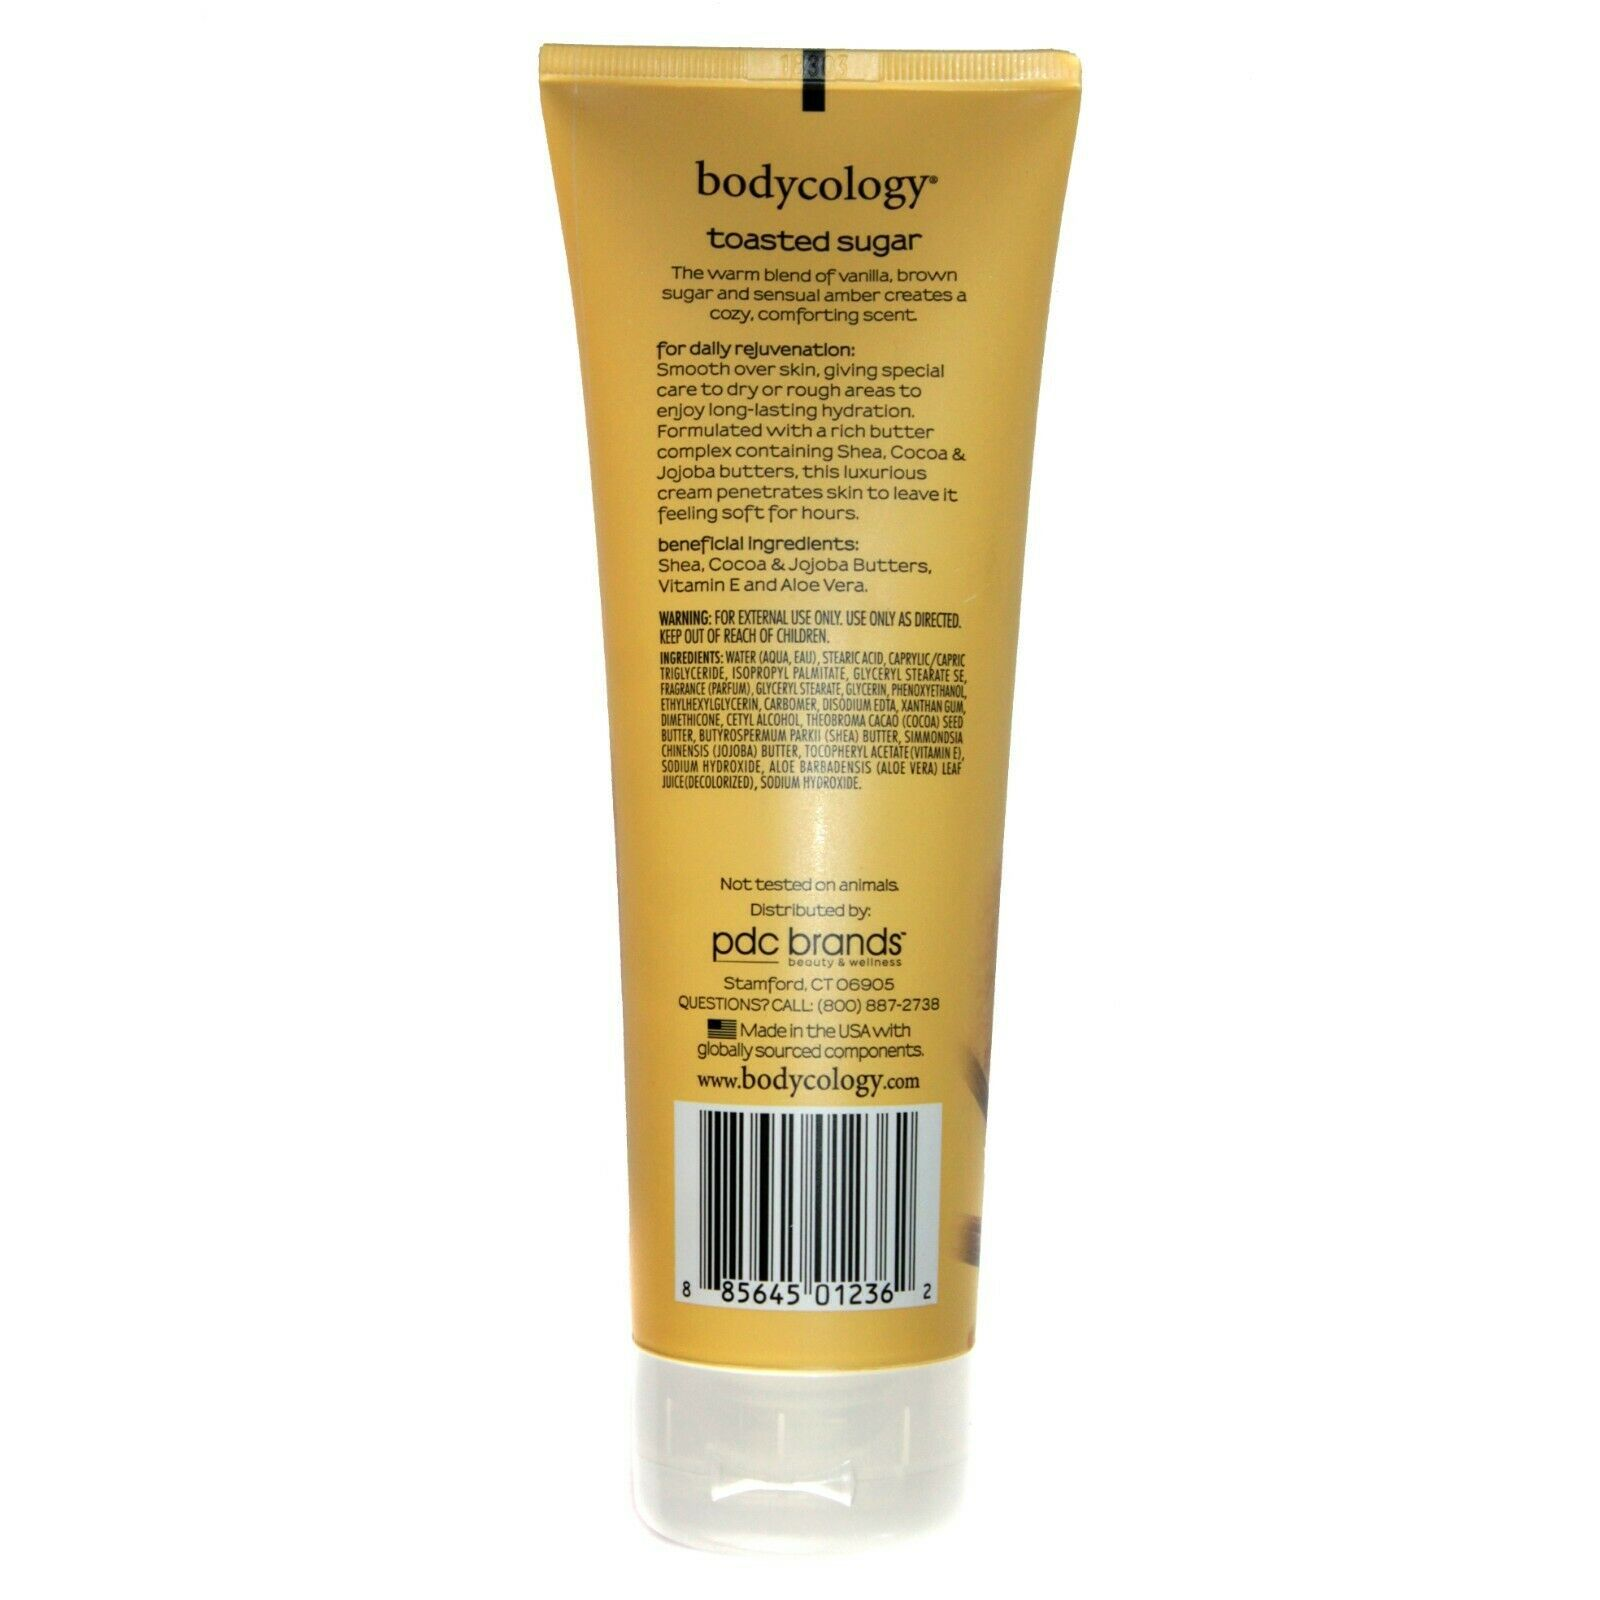 BODYCOLOGY* 8 oz Tube TOASTED SUGAR Moisturizing BODY CREAM Rich Butter Complex